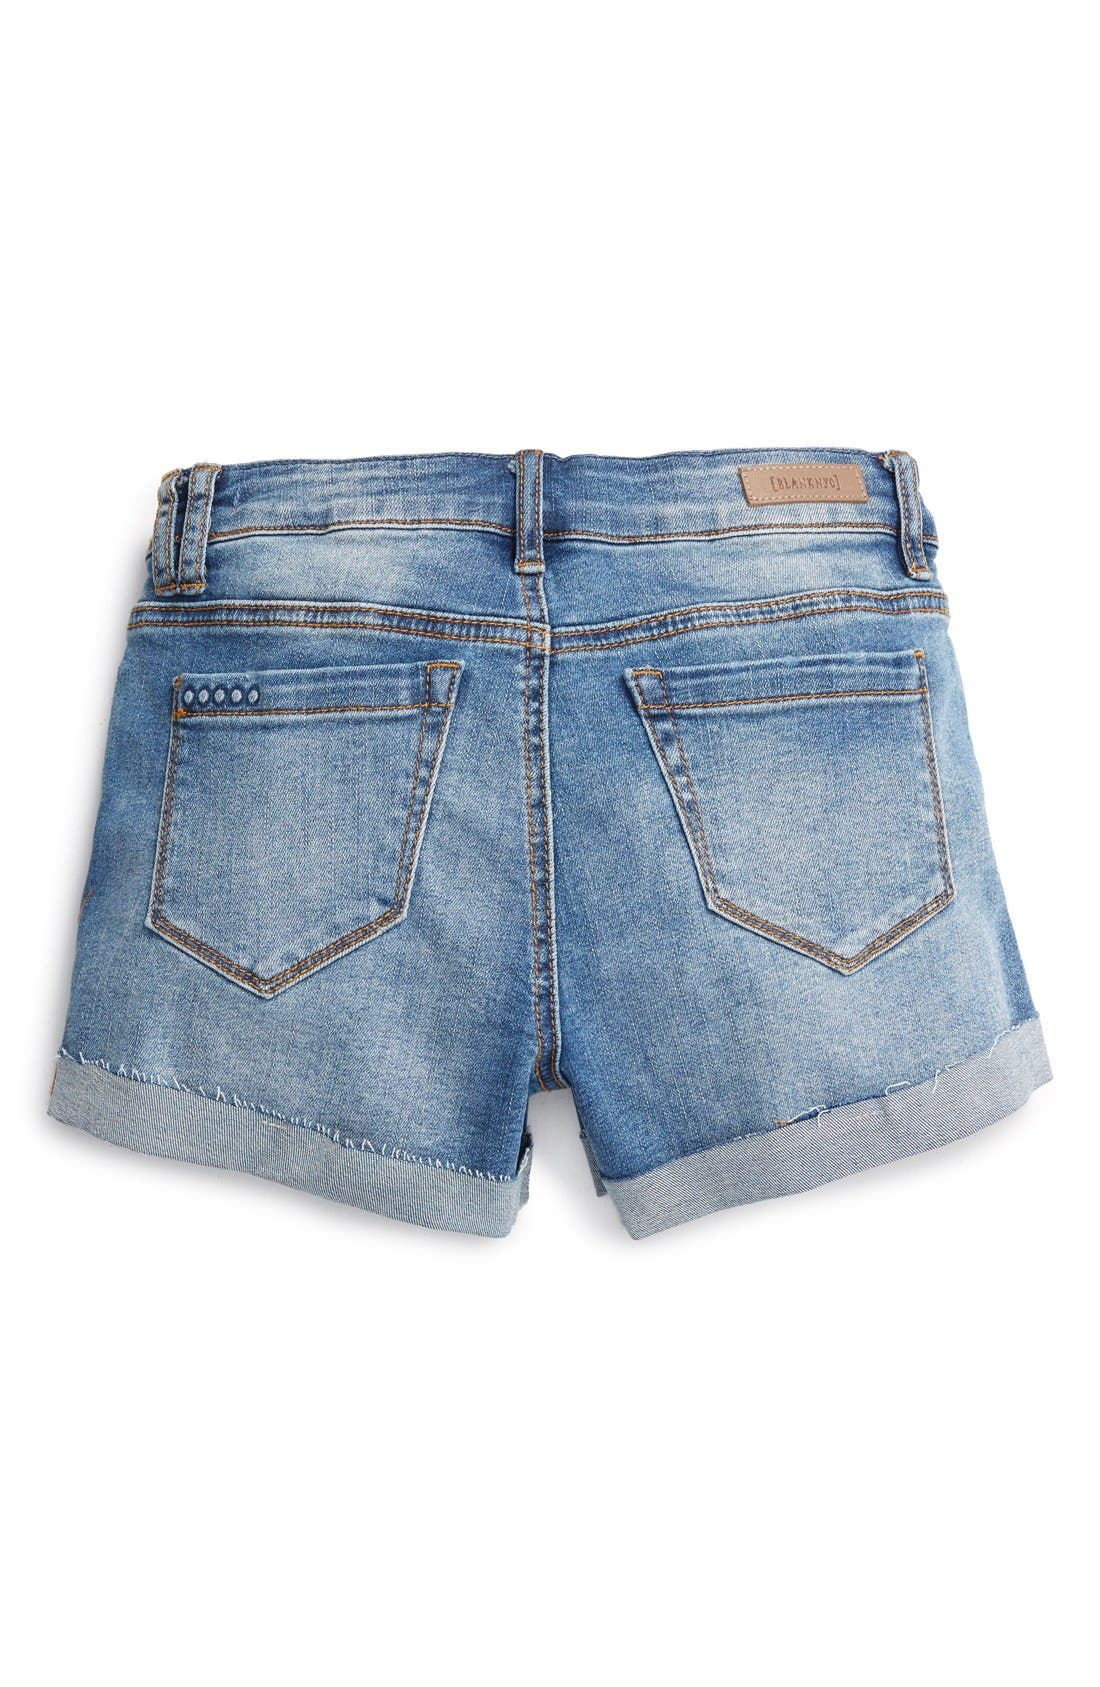 Distressed Roll Cuff Shorts,                             Alternate thumbnail 2, color,                             400